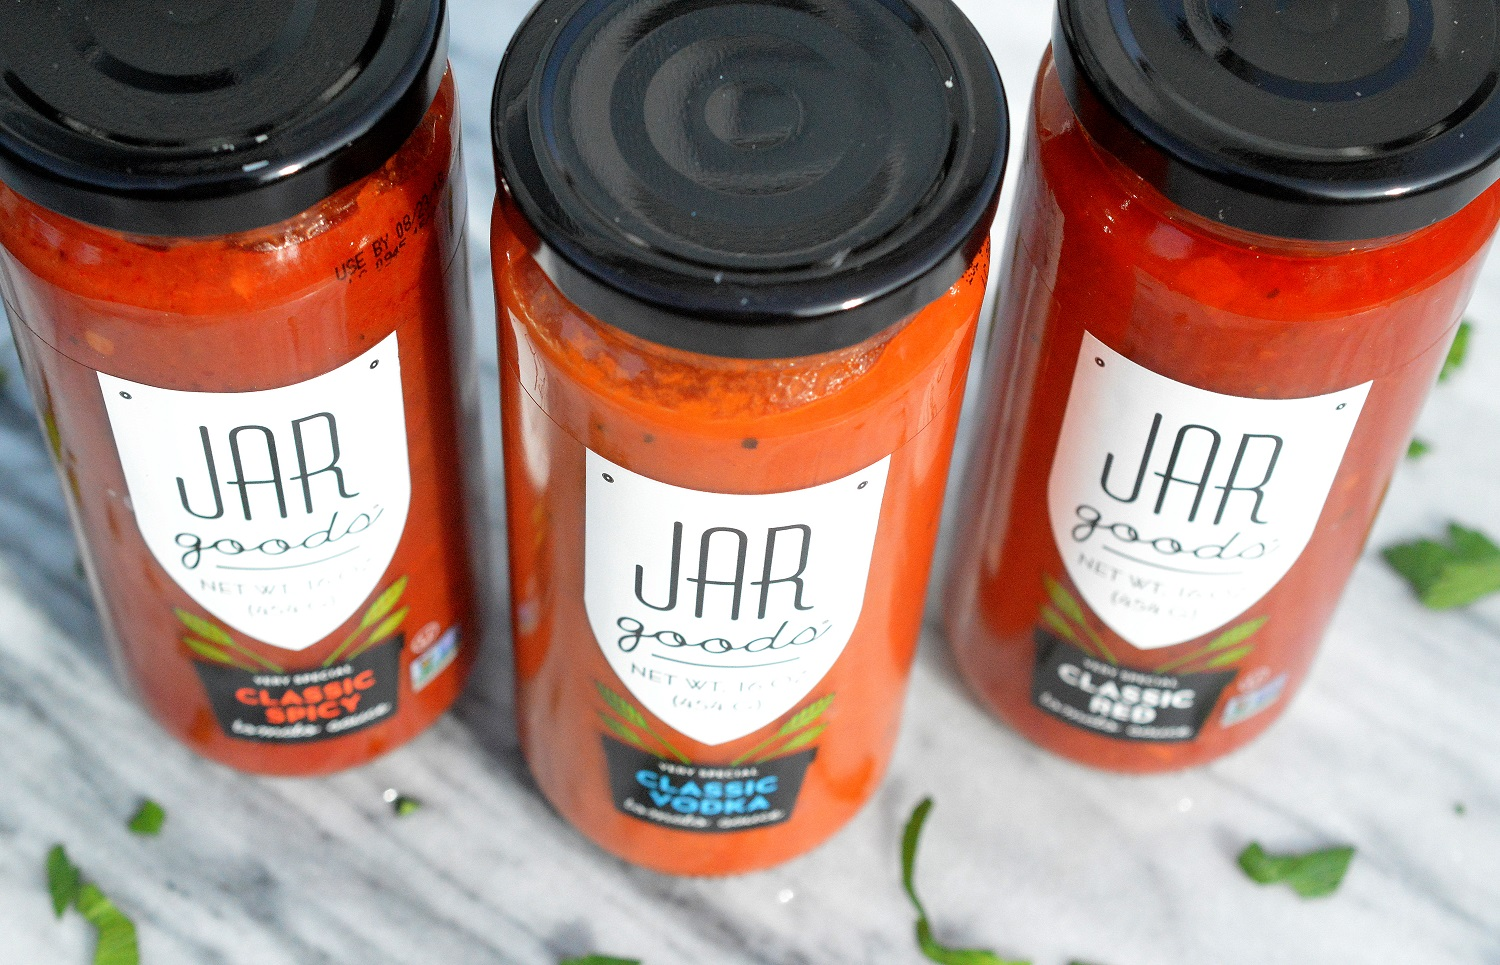 Jar Goods Specialty Pasta Sauces. Clean label, all-natural & GMO Free